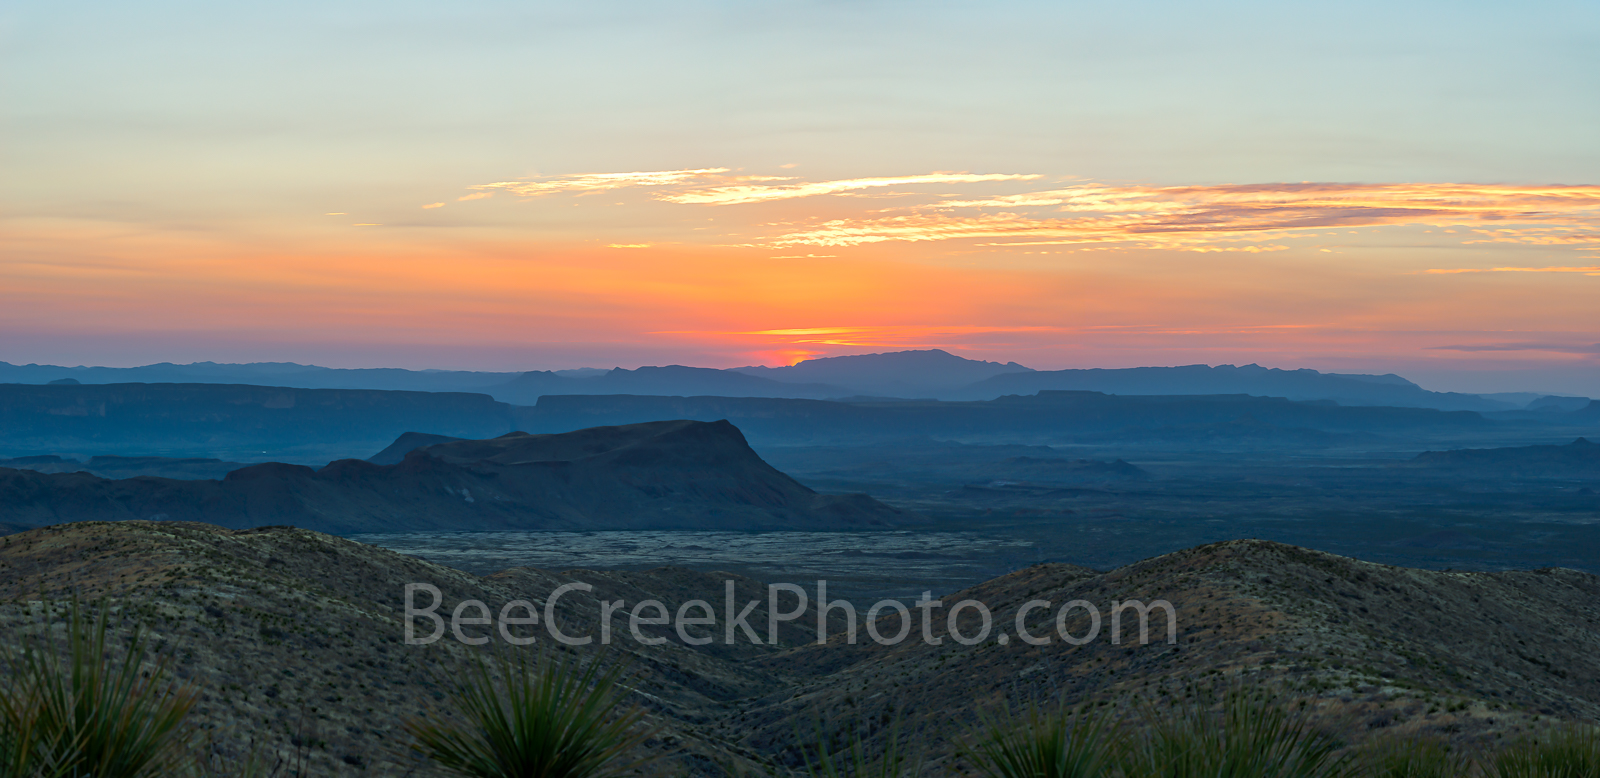 texas, sunset, Sunset Colors in Big Bend, colors of sunset,sotal overlook, mountains, big bend national park, sky, orange, yellow, pink blue, santa elena canyon, texascape, texas landscape, big bend s, photo